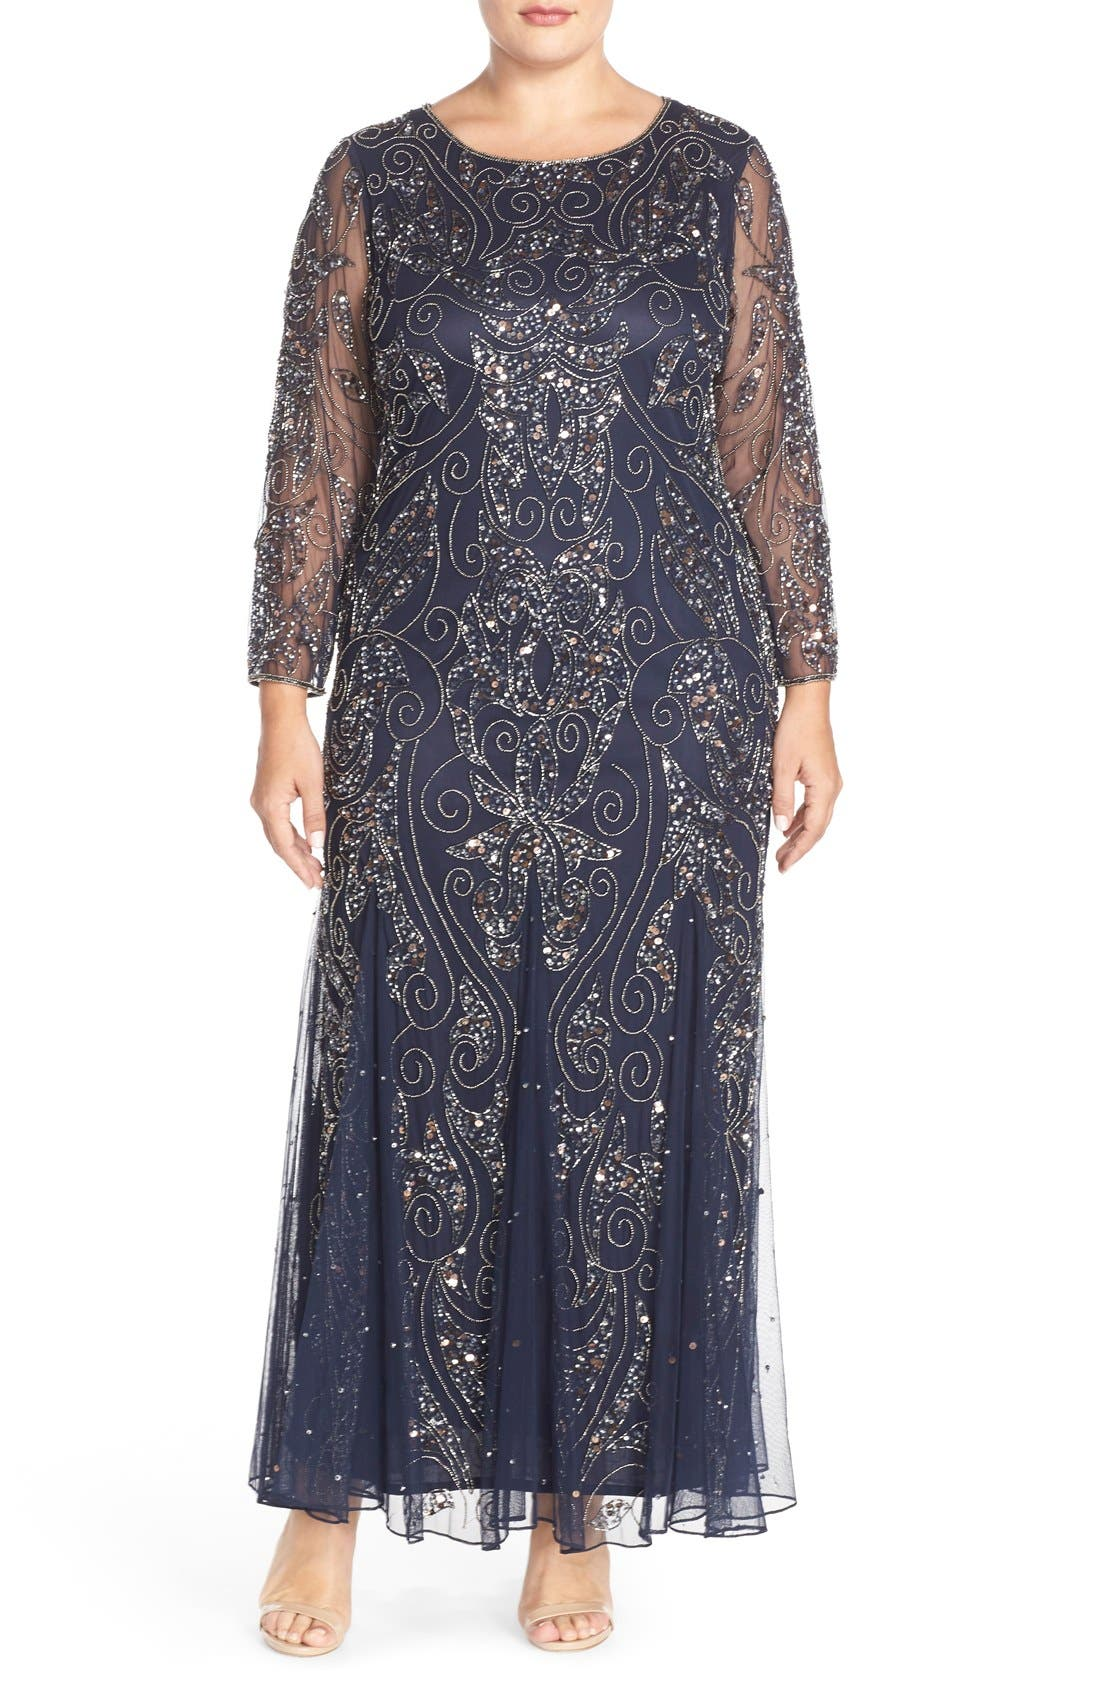 1920s Evening Gowns by Year Plus Size Womens Pisarro Nights Embellished Three Quarter Sleeve Gown Size 14W - Blue $238.00 AT vintagedancer.com